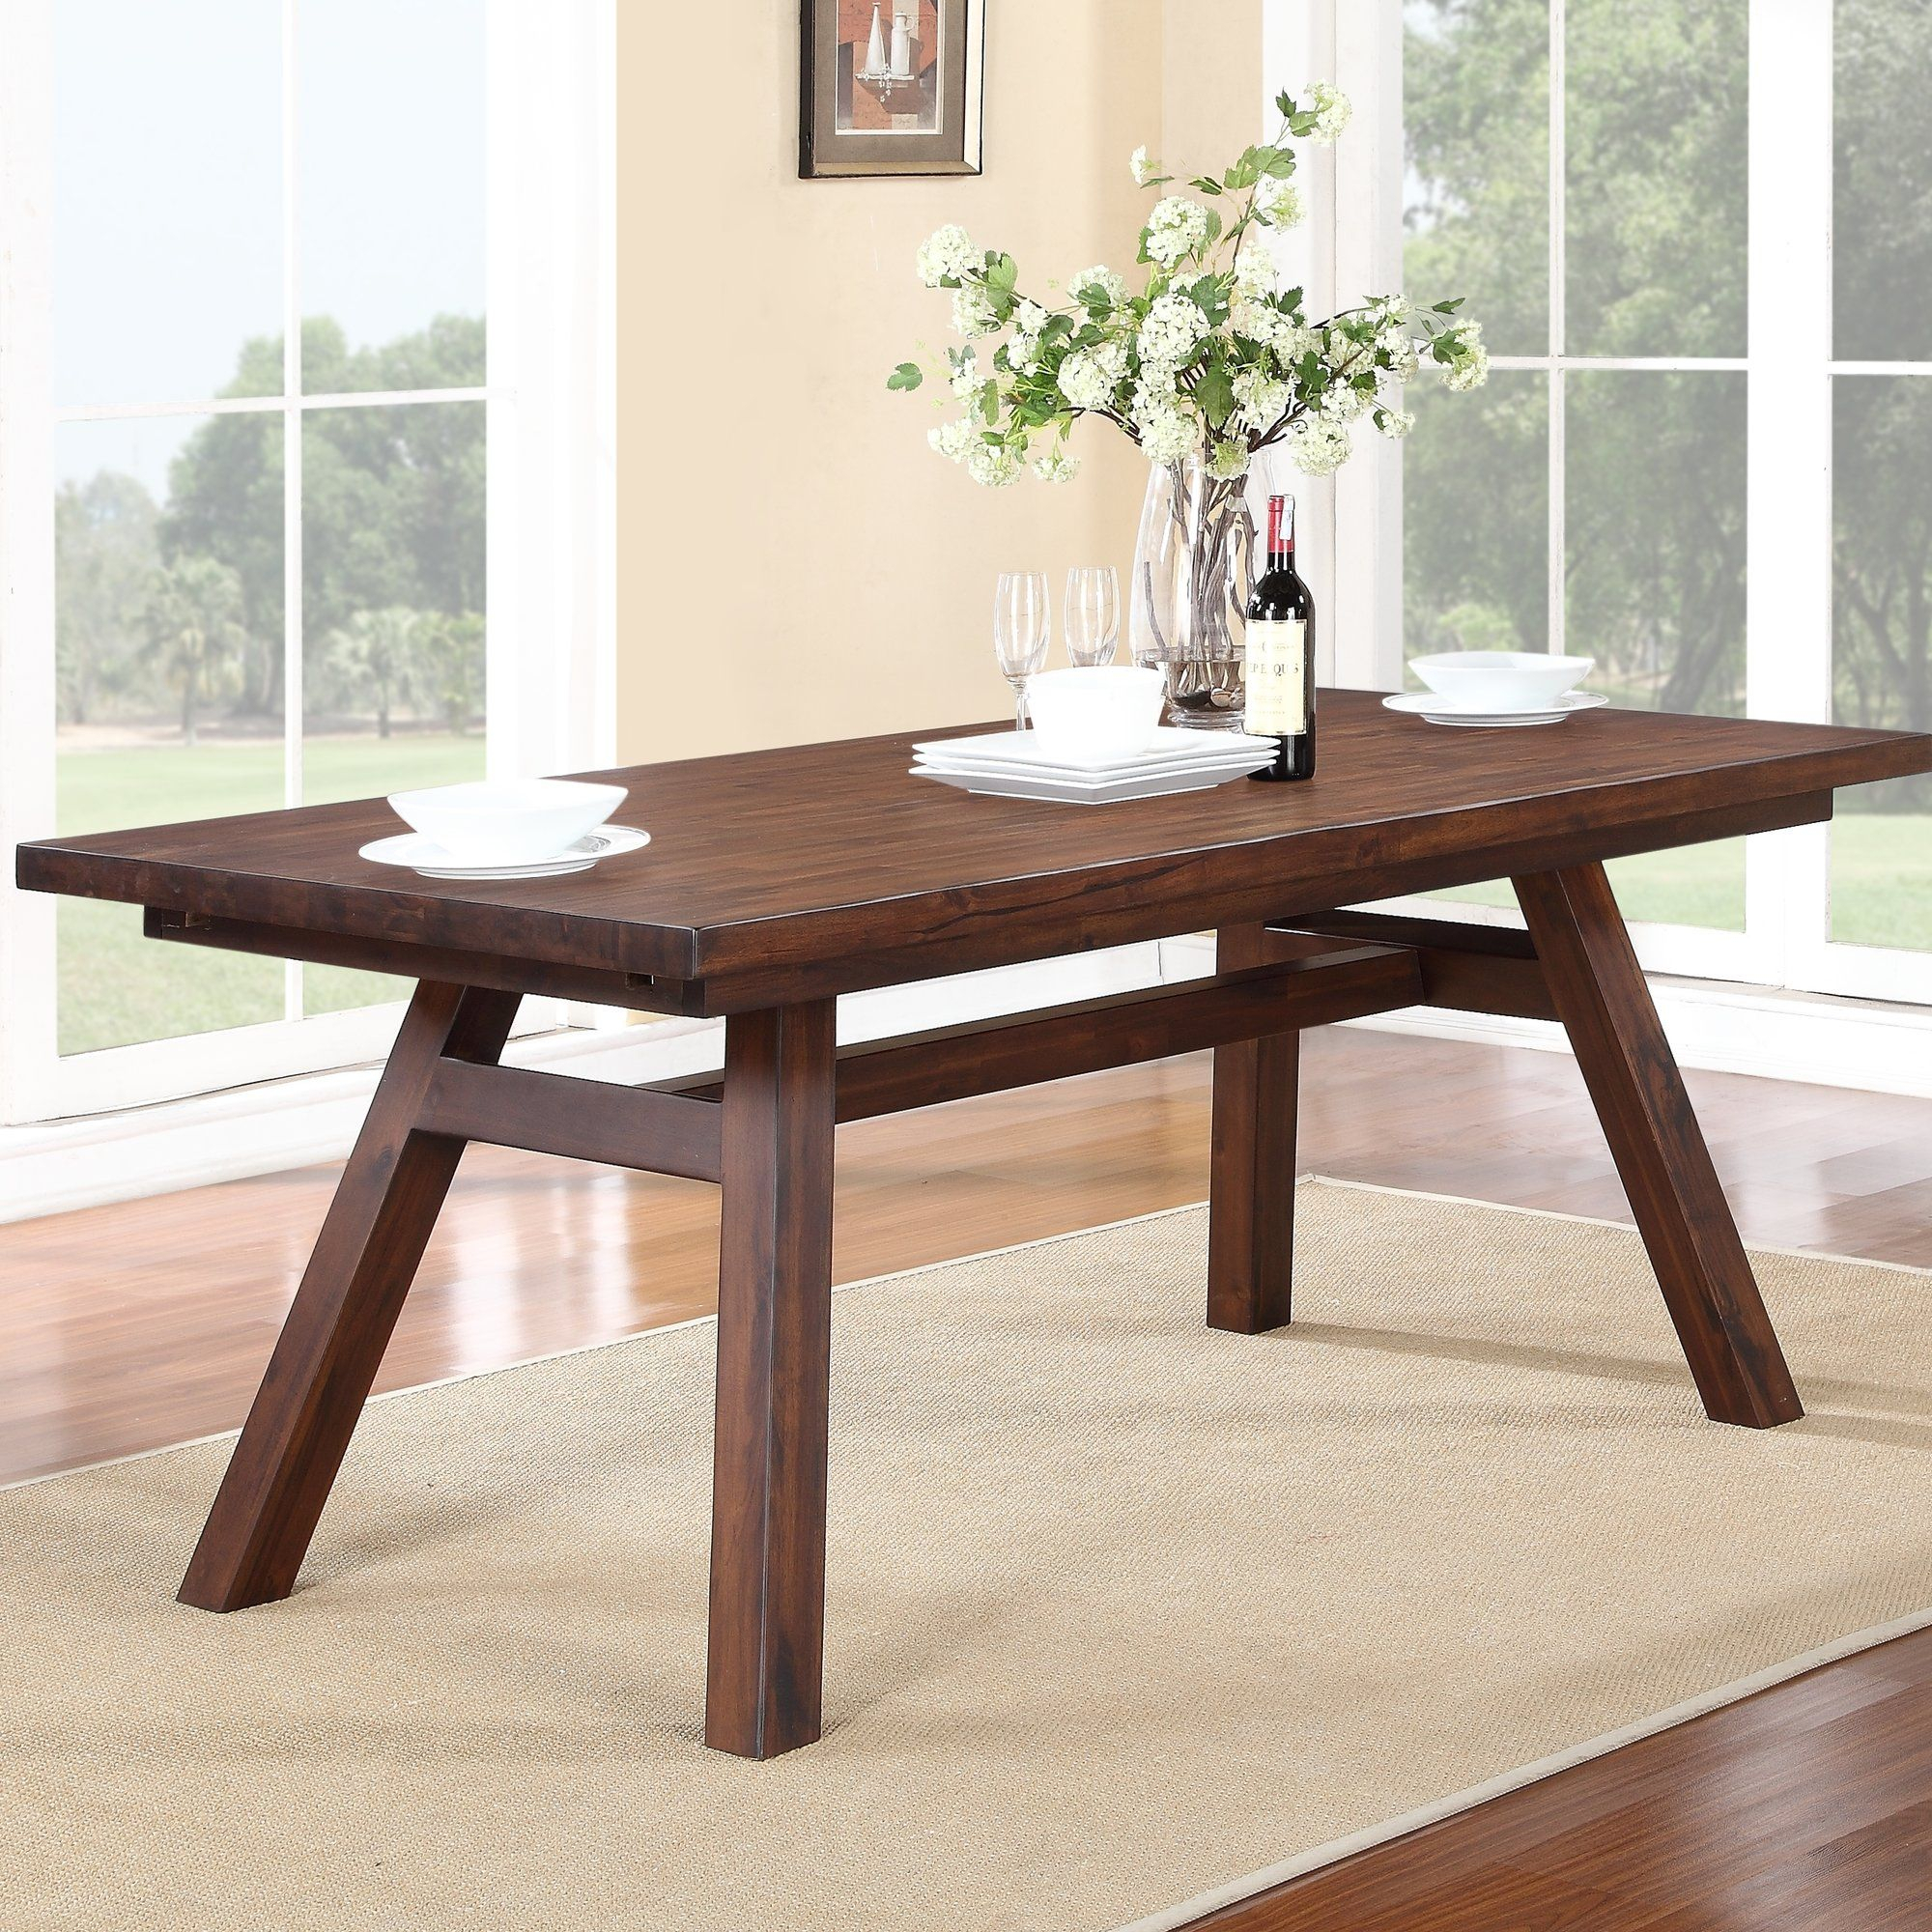 Marine Solid Wood Dining Table | Dining Table In Kitchen Regarding Current Katarina Extendable Rubberwood Solid Wood Dining Tables (View 4 of 15)